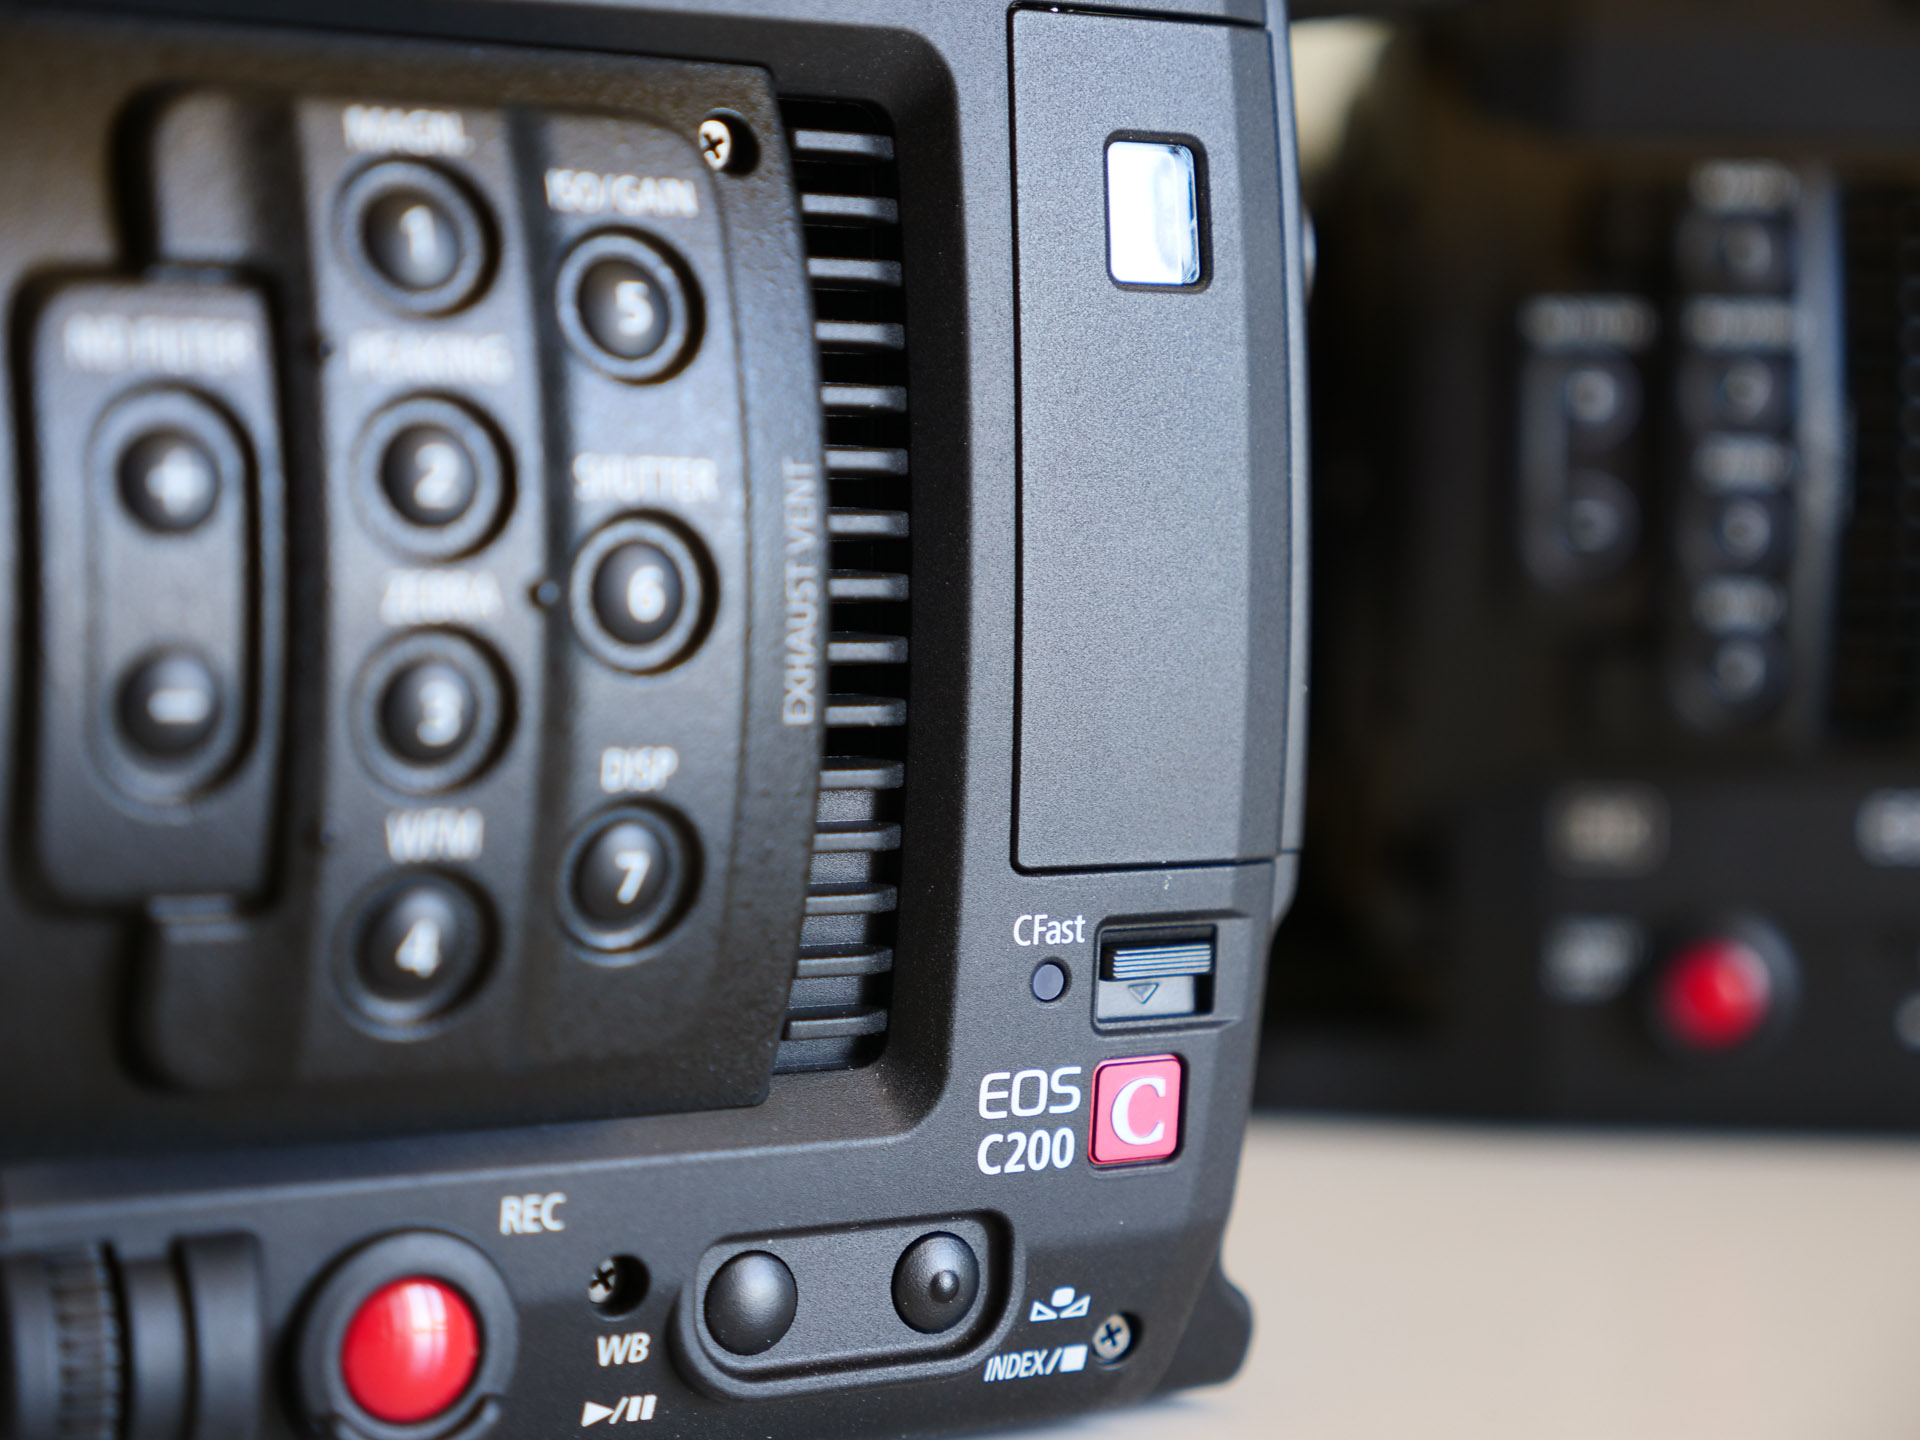 Canon C200 v the competition: costs, specs, is it right for